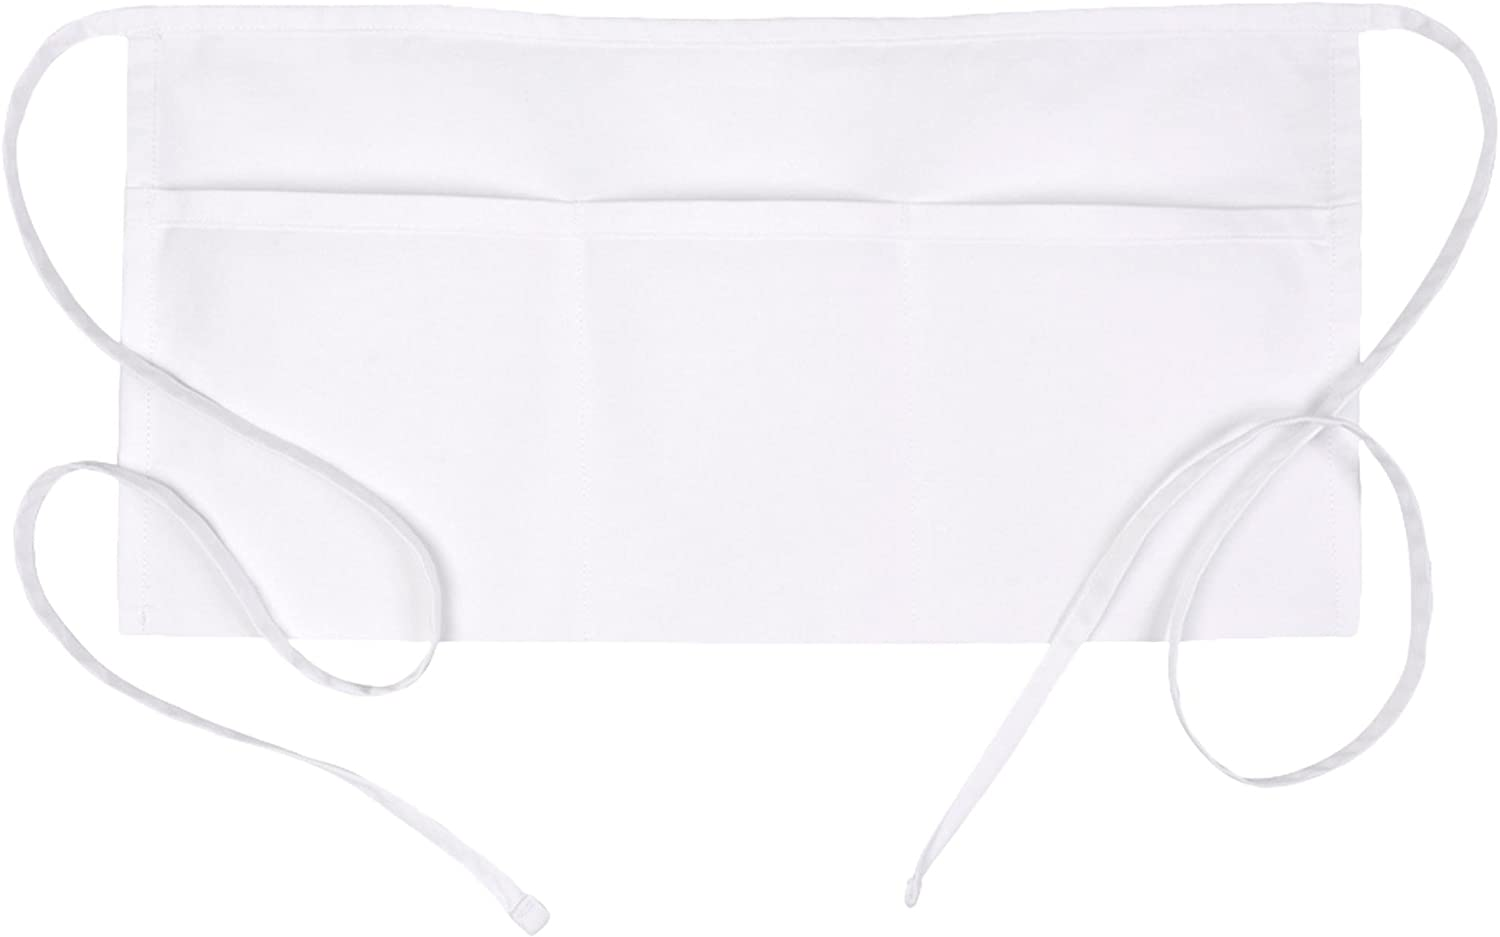 Fame Original 3 New Tucson Mall Shipping Free Pocket Waist Apron 18135 for O in White Adults -